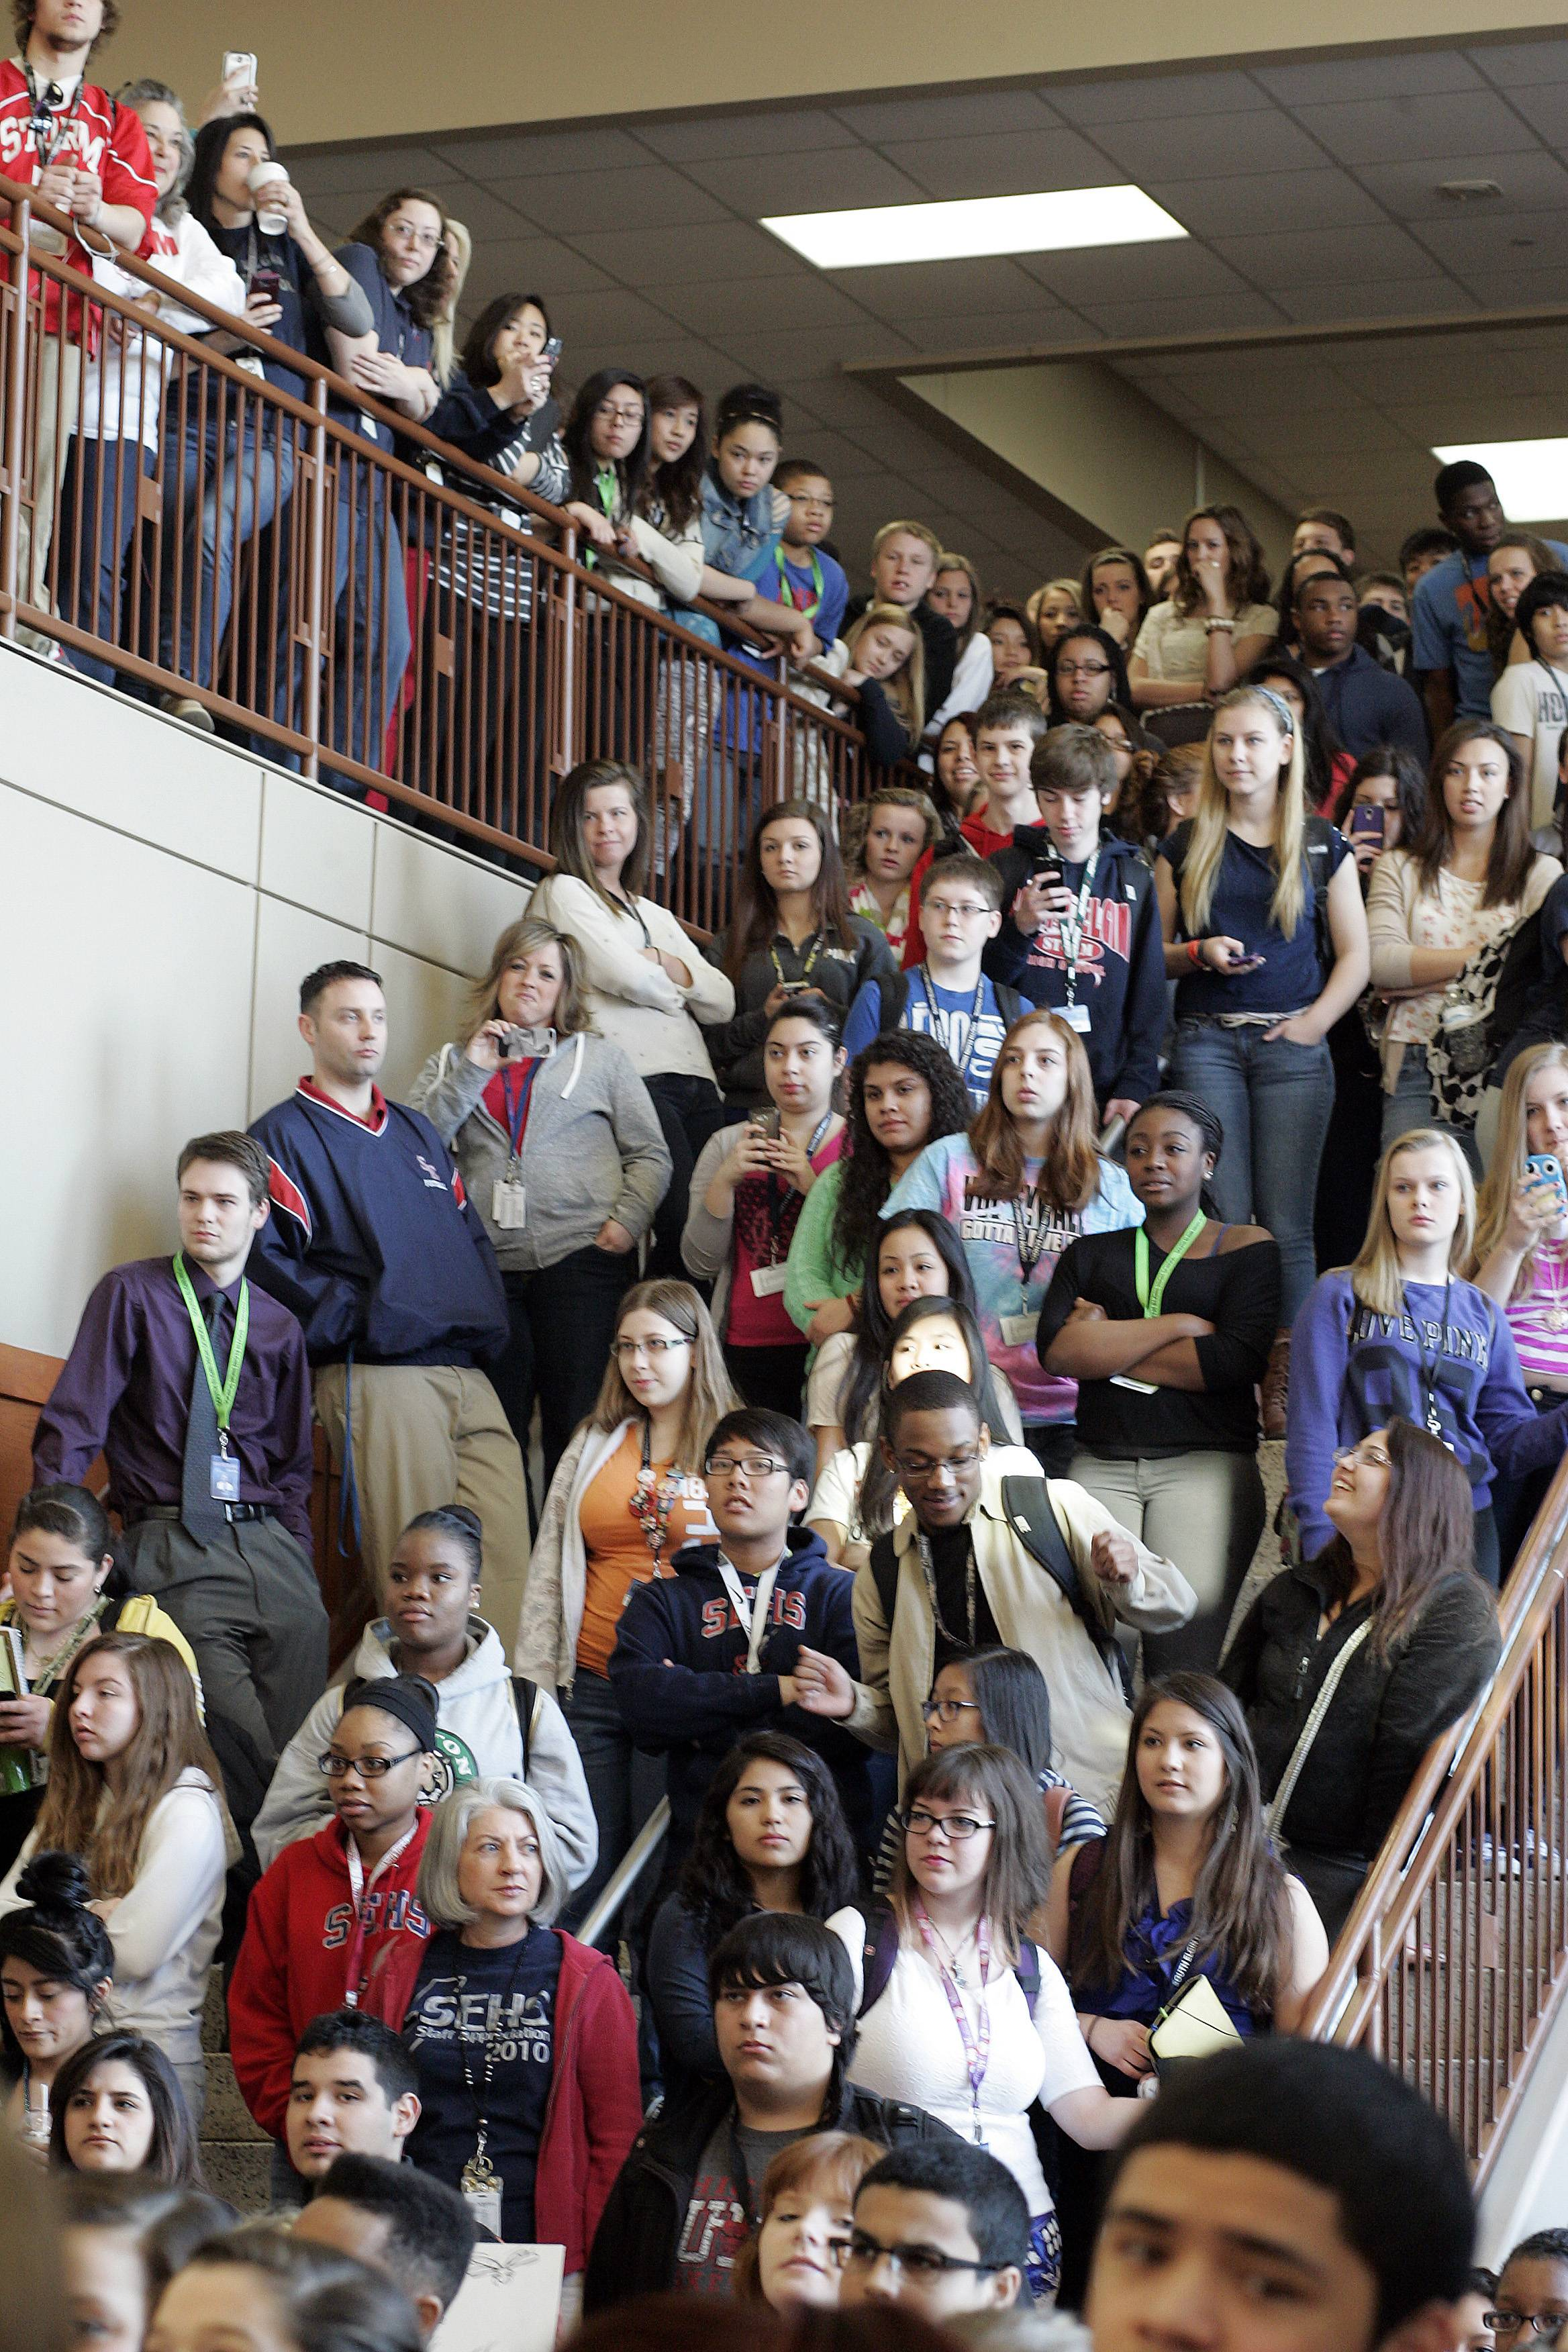 Brian Hill/bhill@dailyherald.comThousands of students line the halls of South Elgin High School to watch as the village is awarded the 101.9 FM, The Mix trophy after they won Eric and Kathy's Suburban Madness Battle of the Burbs Contest.